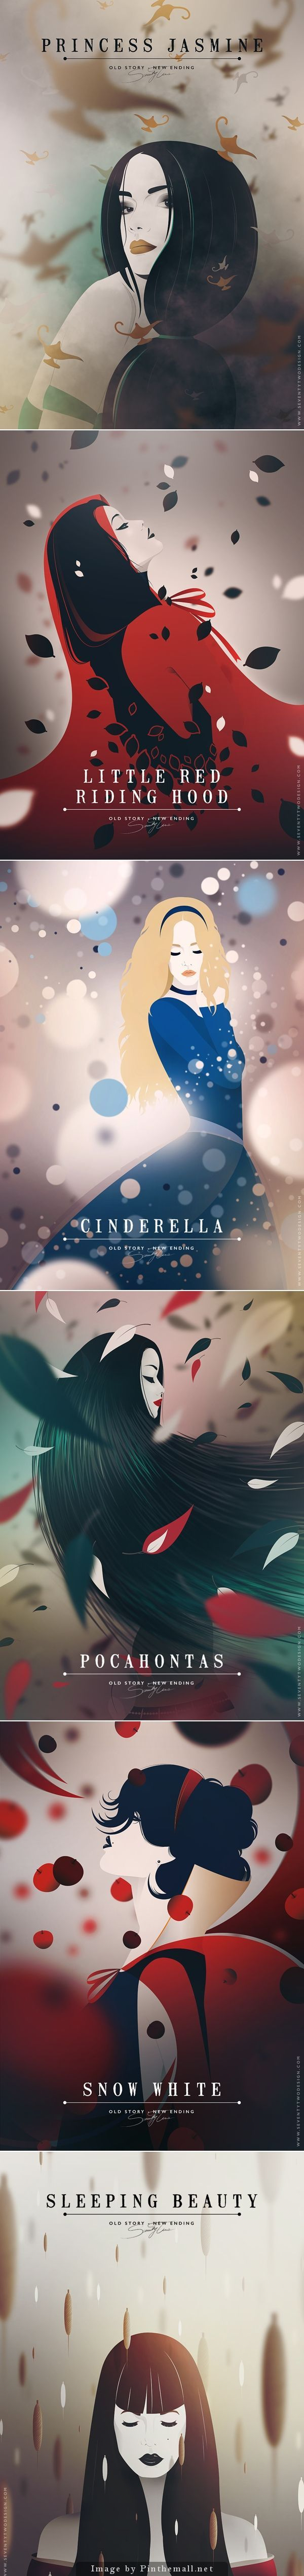 Disney: old story - new ending illustrations by Seventy Two: